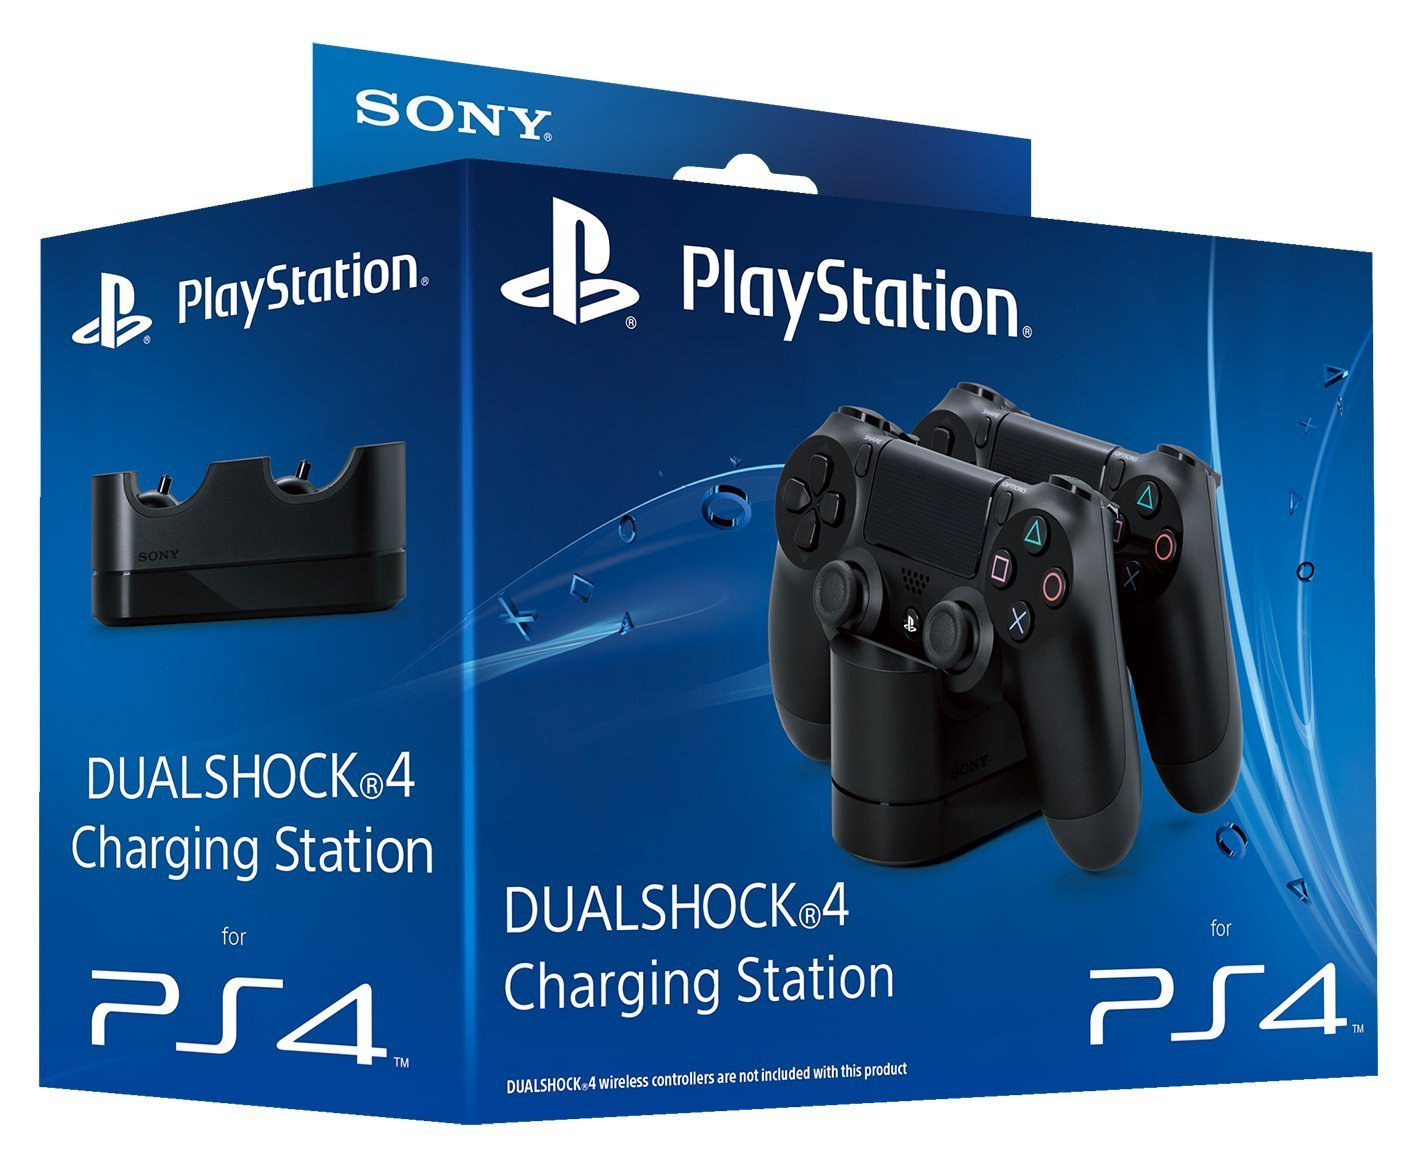 Sony Playstation DualShock 4 Ladestation